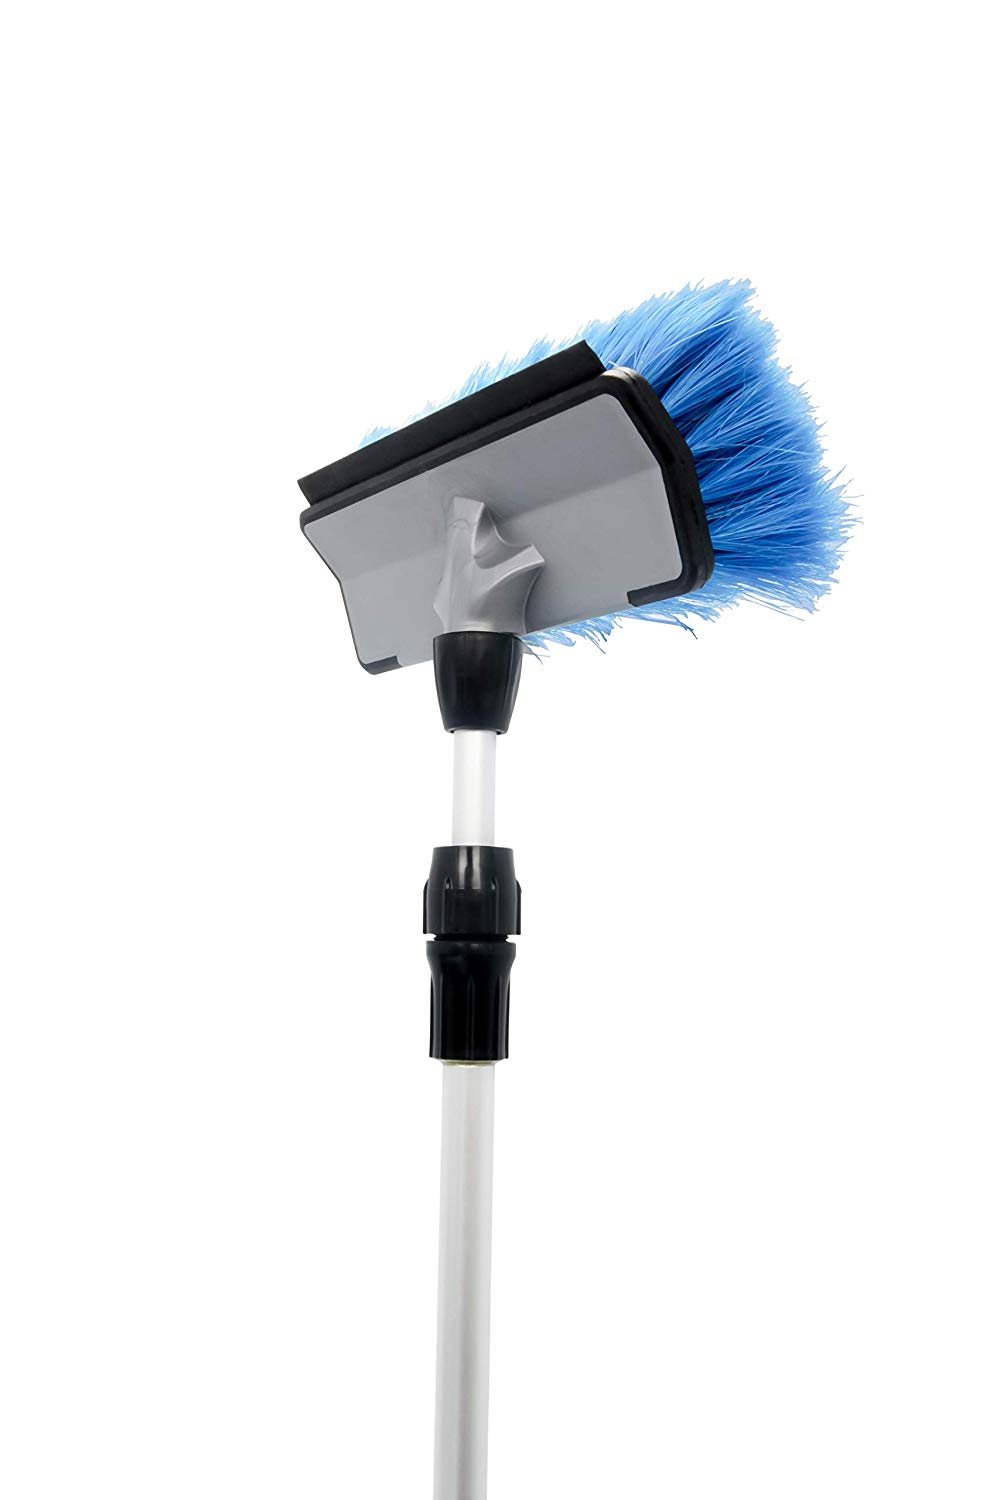 Camco 43633 Adjustable Handle RV Wash Brush